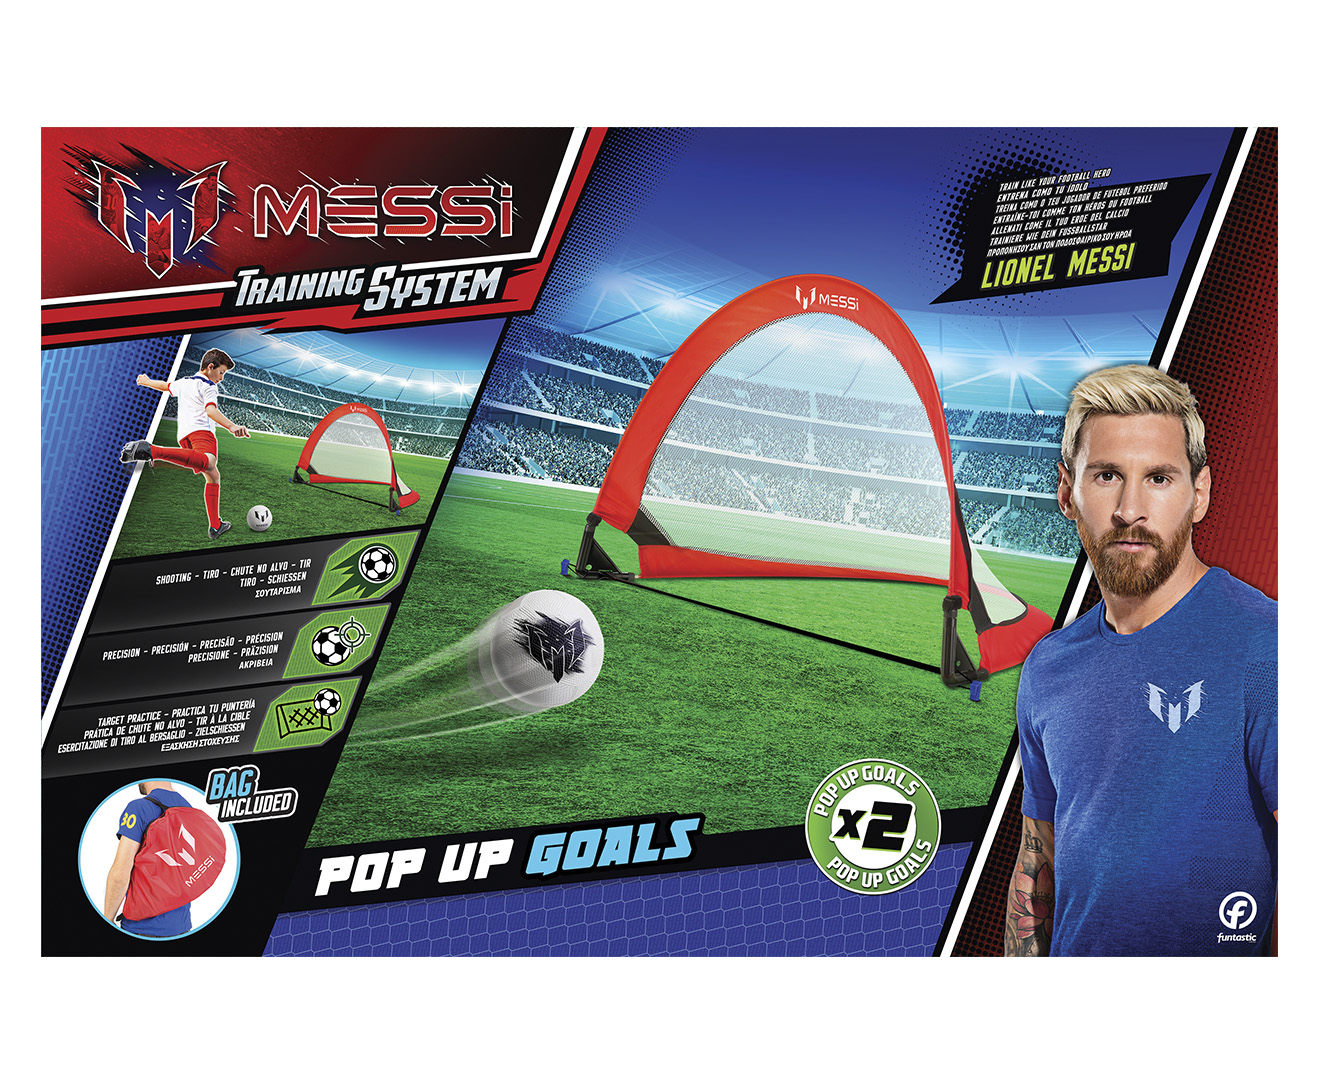 cd4d5720a Messi Training System Pop Up Goals 2-Pack | Catch.com.au